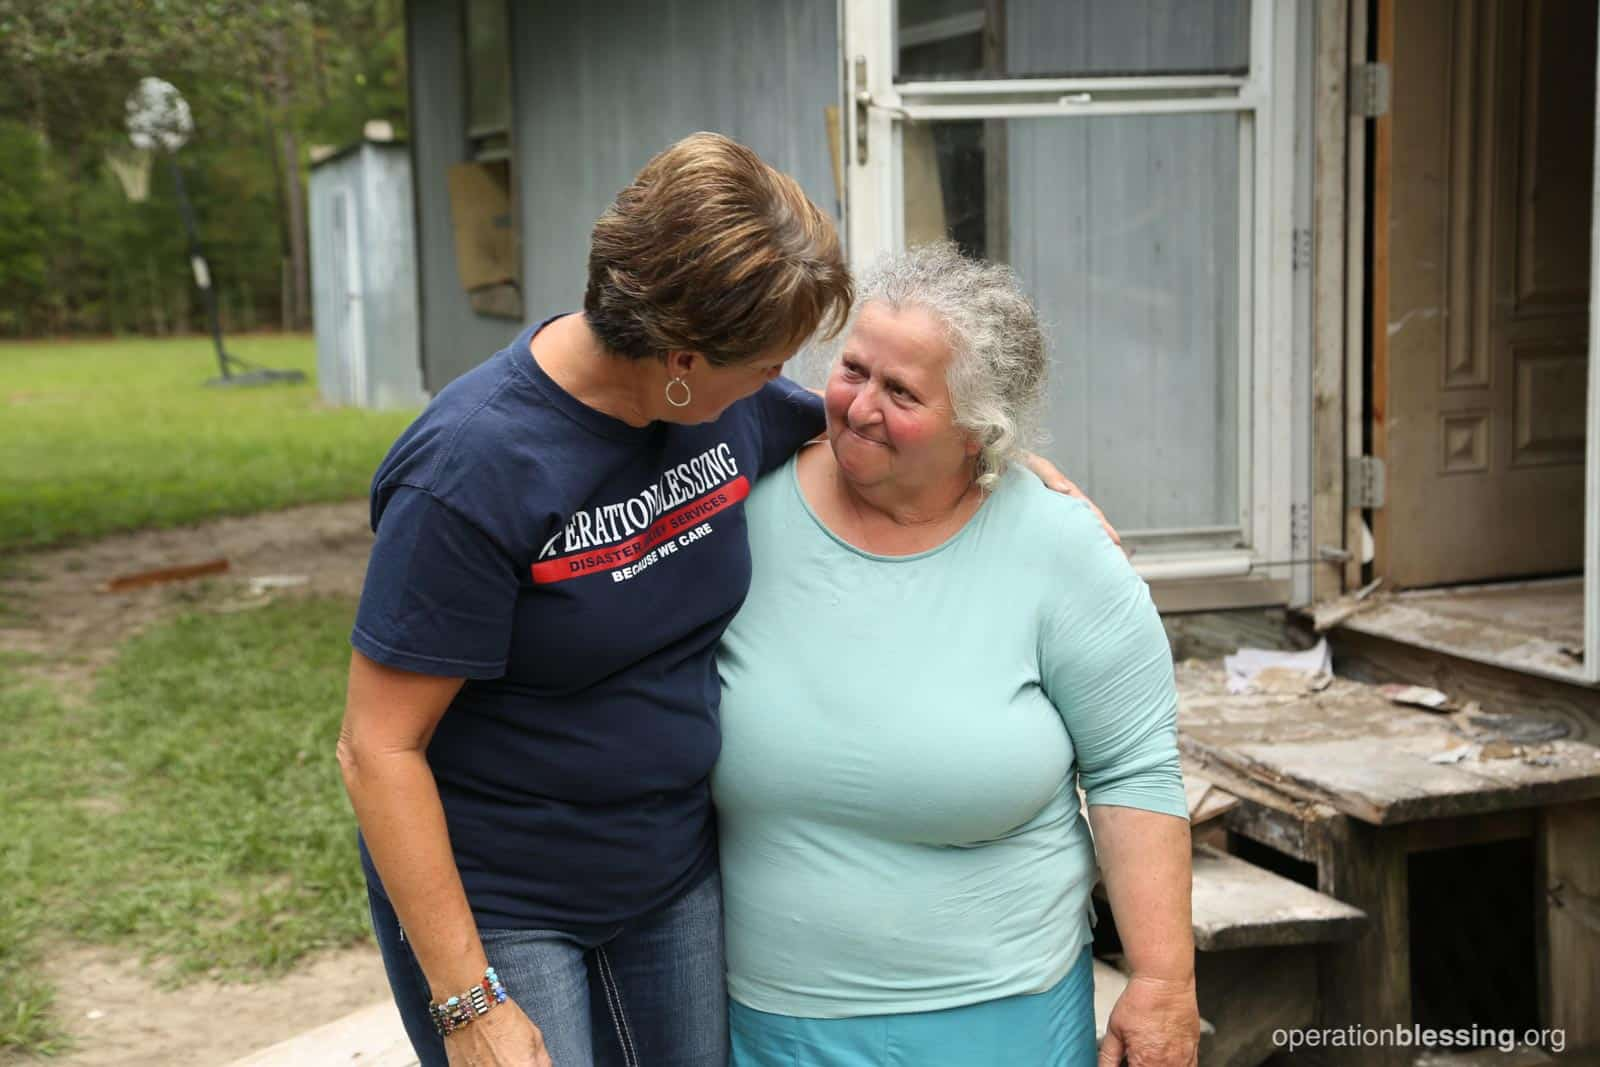 Operation Blessing field worker embraces an amazing woman named Laura after Hurricane Harvey flooded her home in Texas.